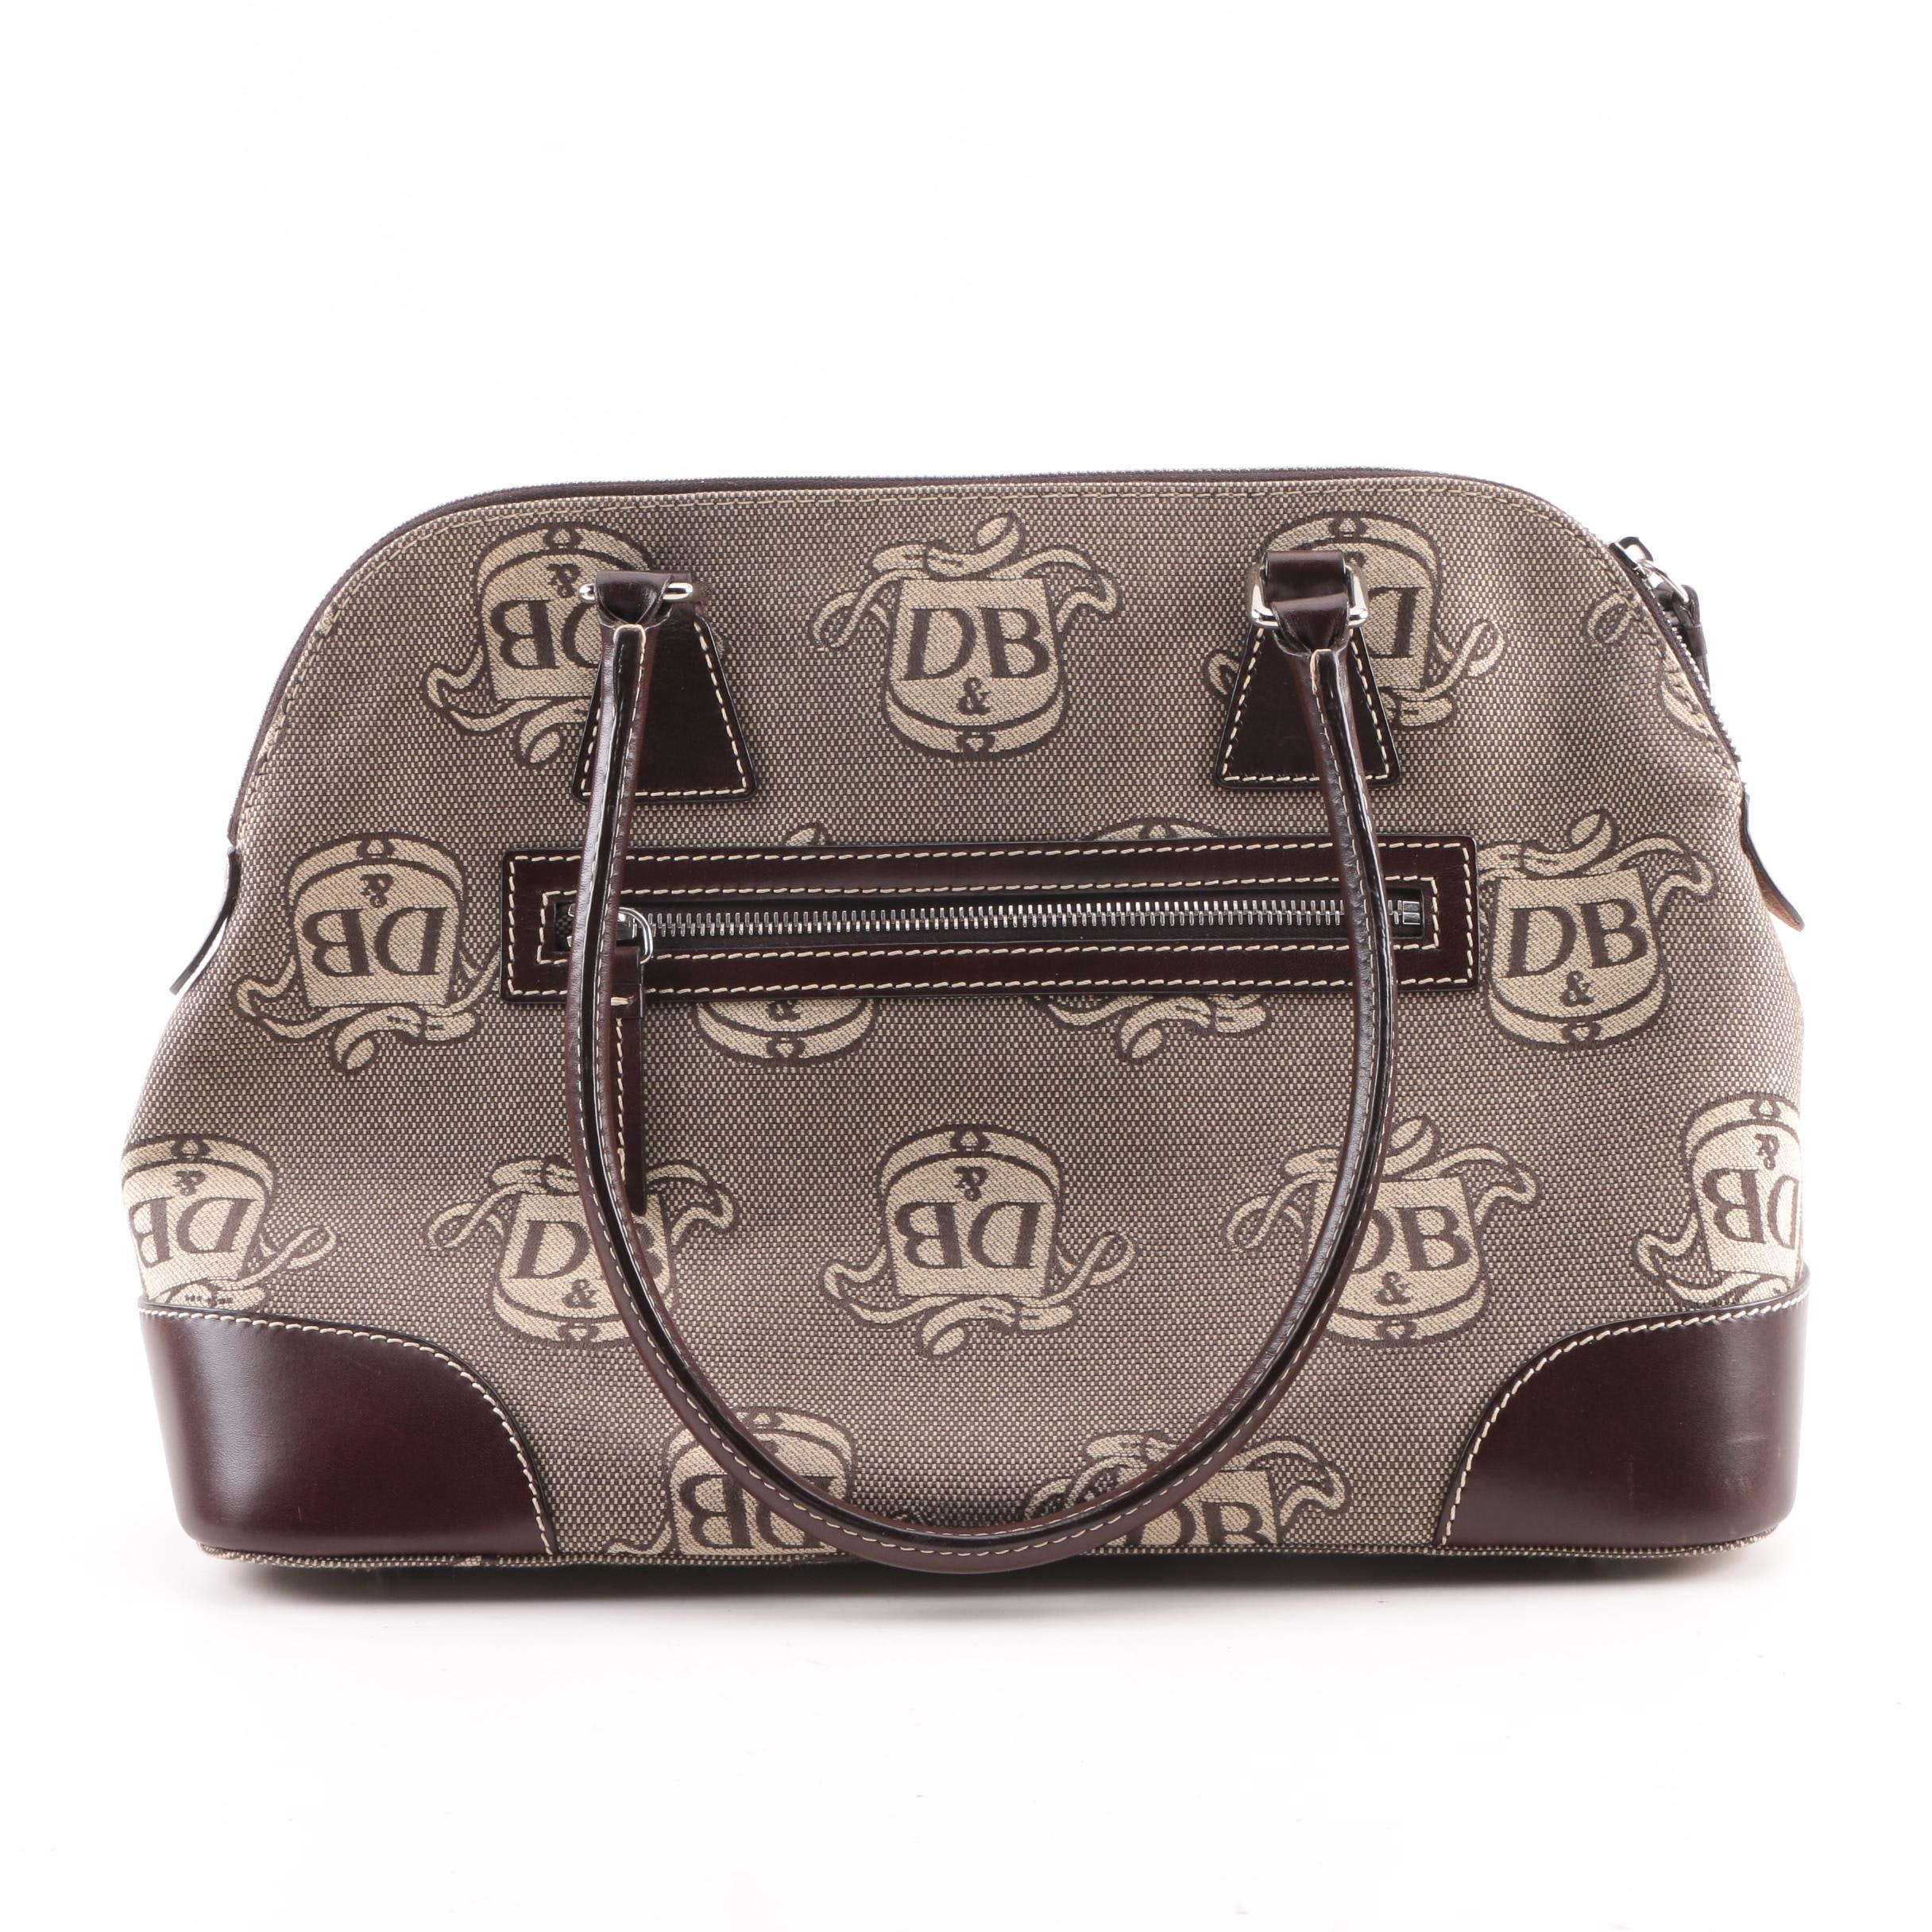 Dooney & Bourke Donegal Crest Domed Satchel